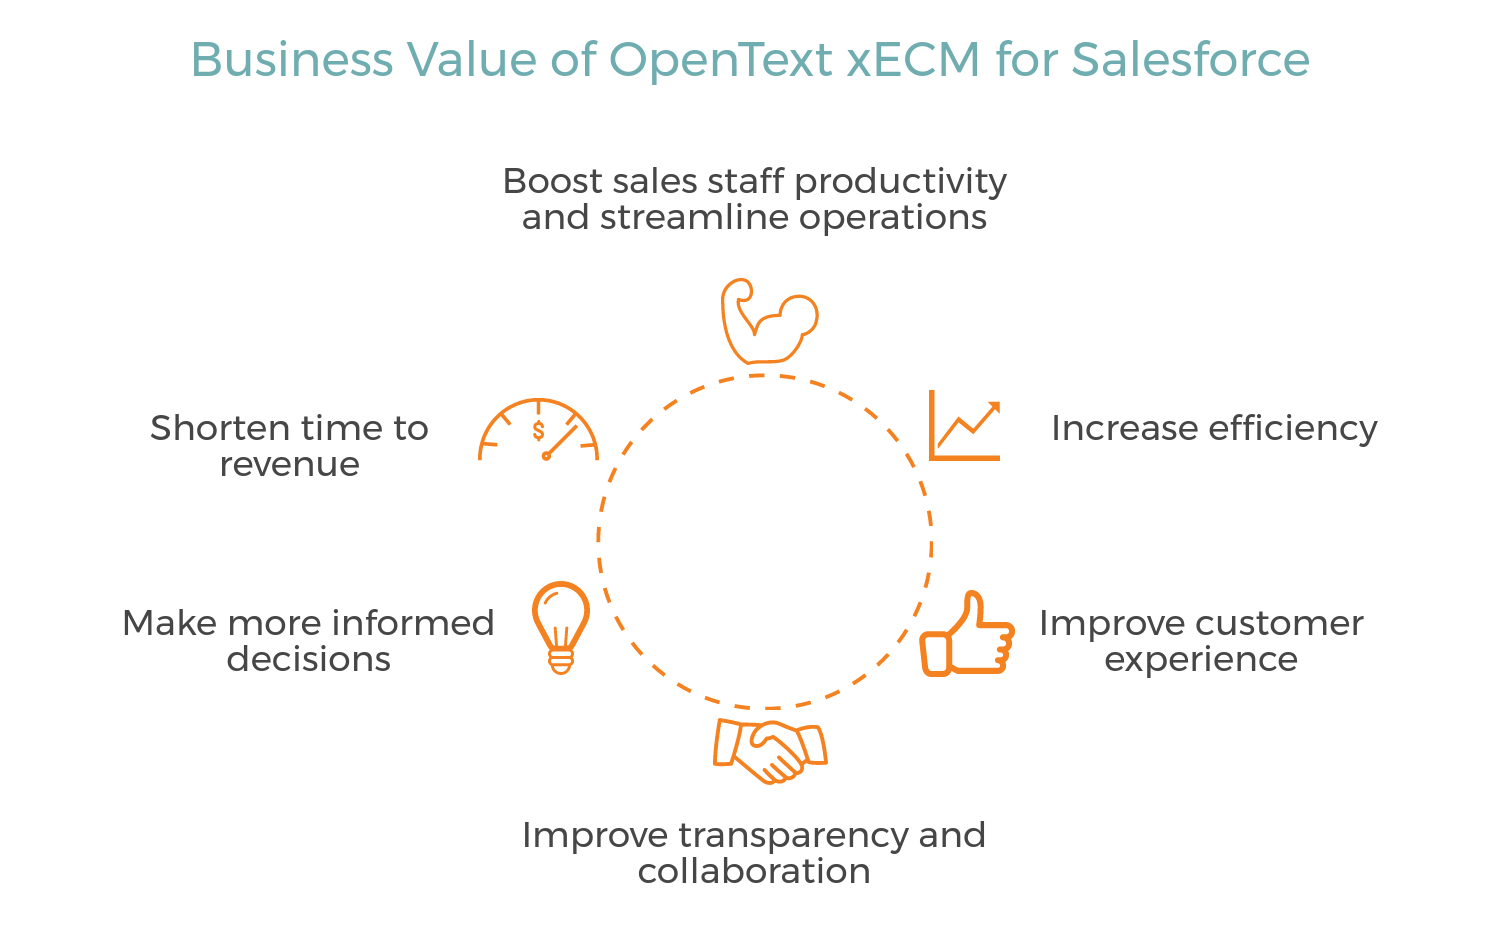 Business Value of OpenText xECM for Salesforce